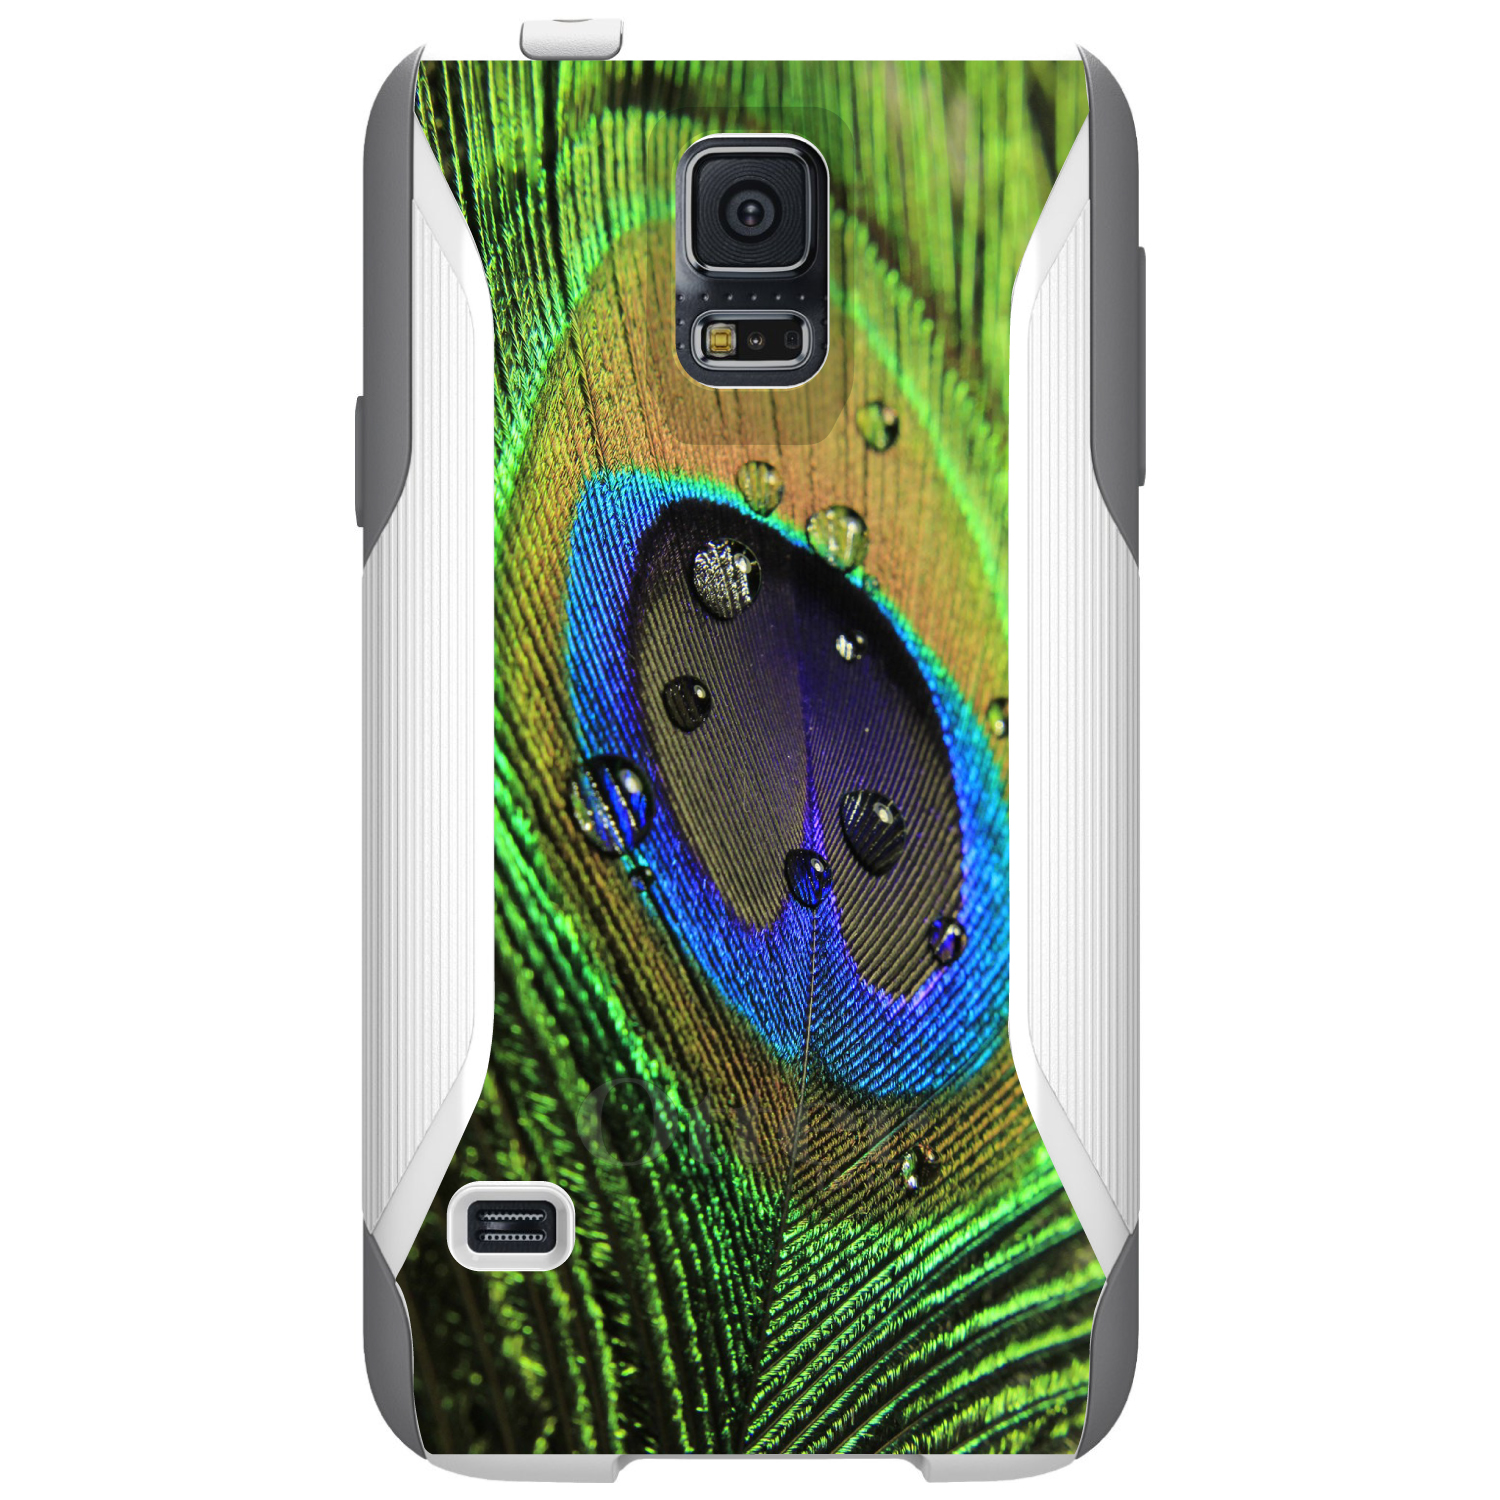 DistinctInk™ Custom White OtterBox Commuter Series Case for Samsung Galaxy S5 - Peacock Feather Close Up